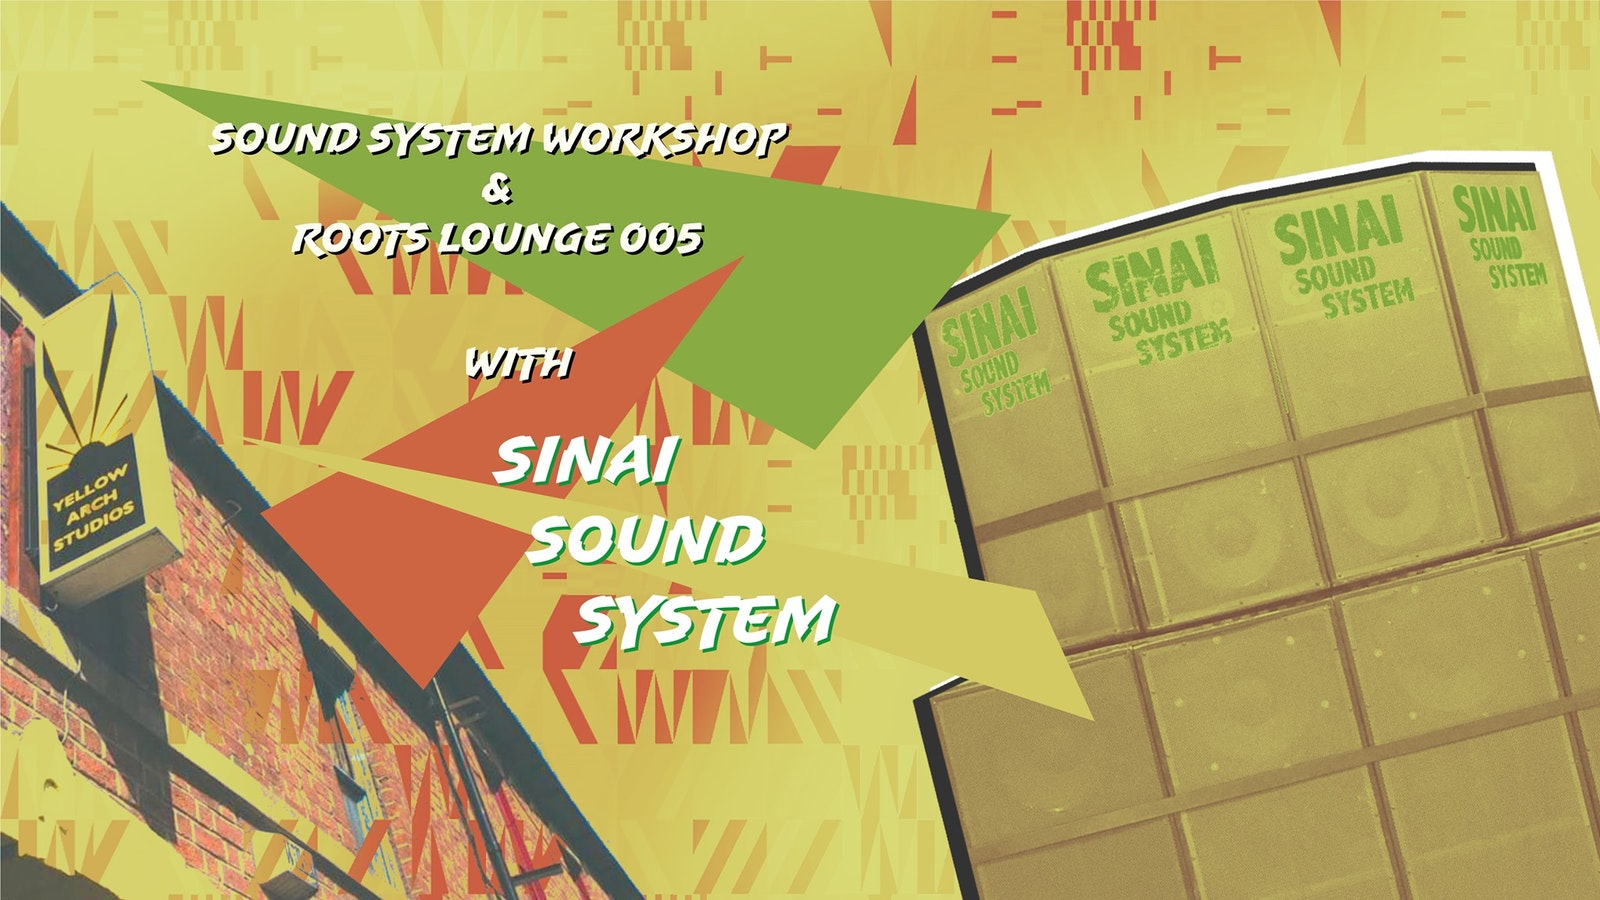 Roots Lounge 005 & Sound System Workshop with Sinai Sound System